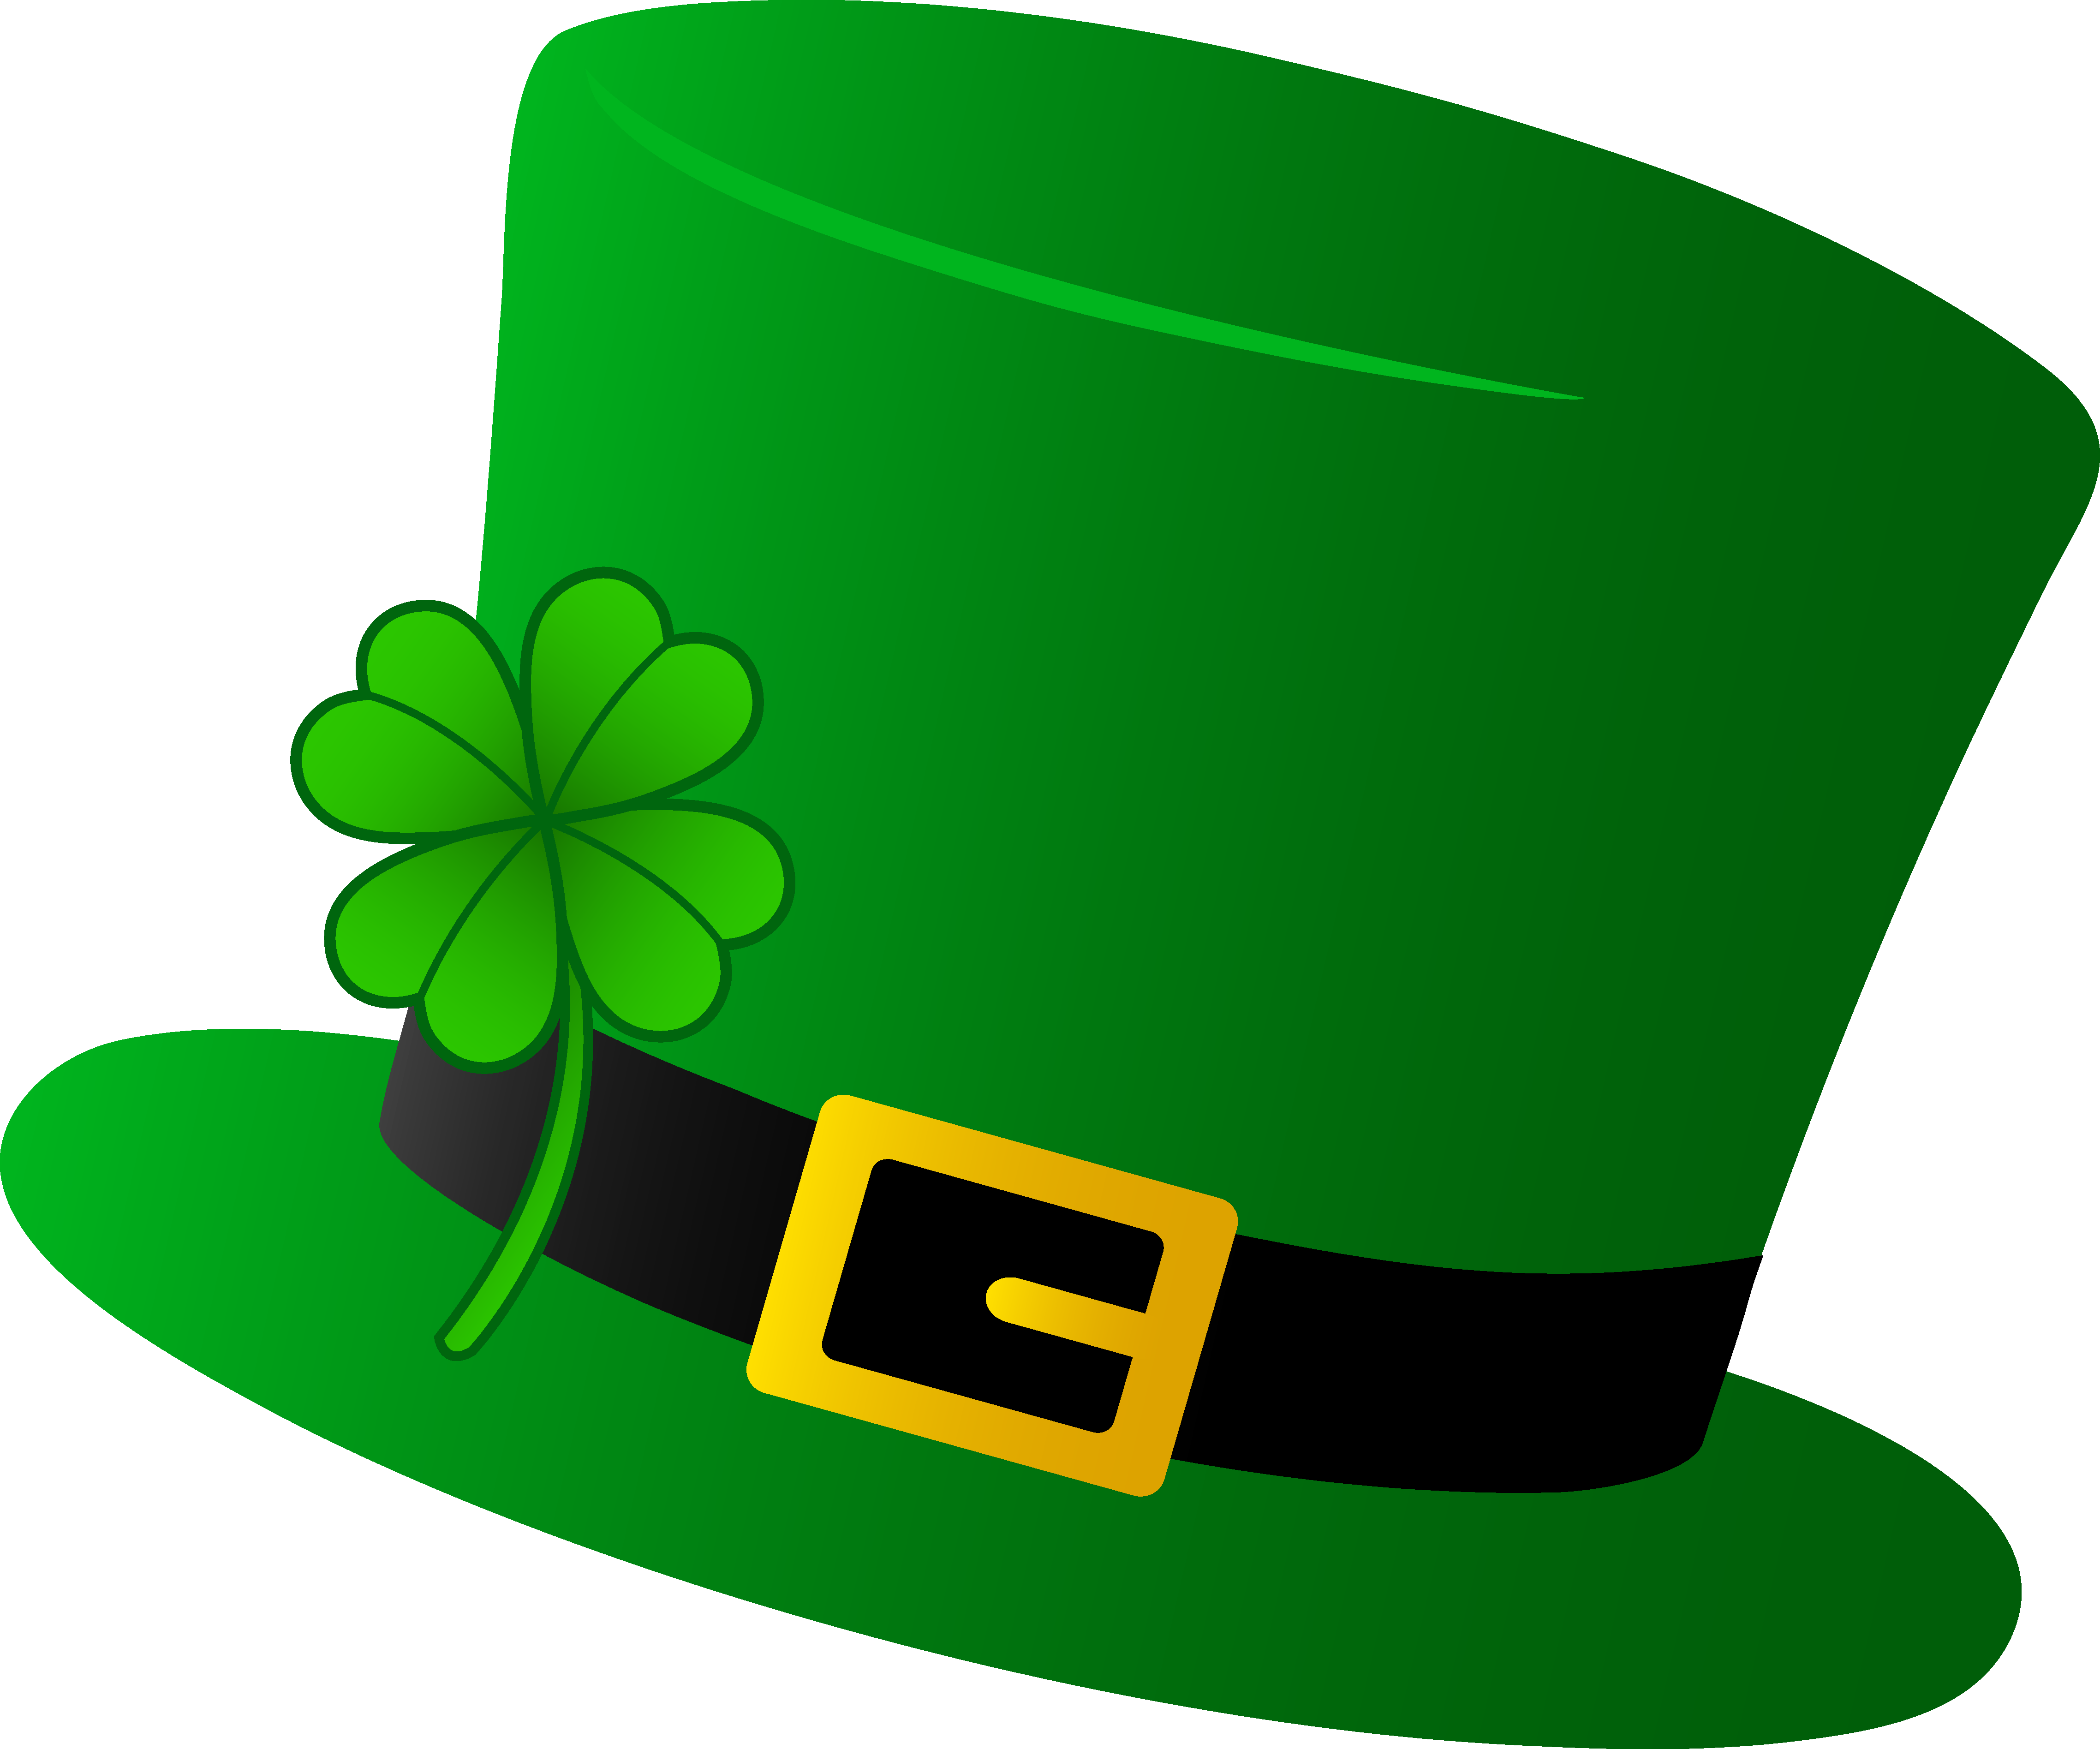 Green Saint Patricks Day Hat - Free Clip Art